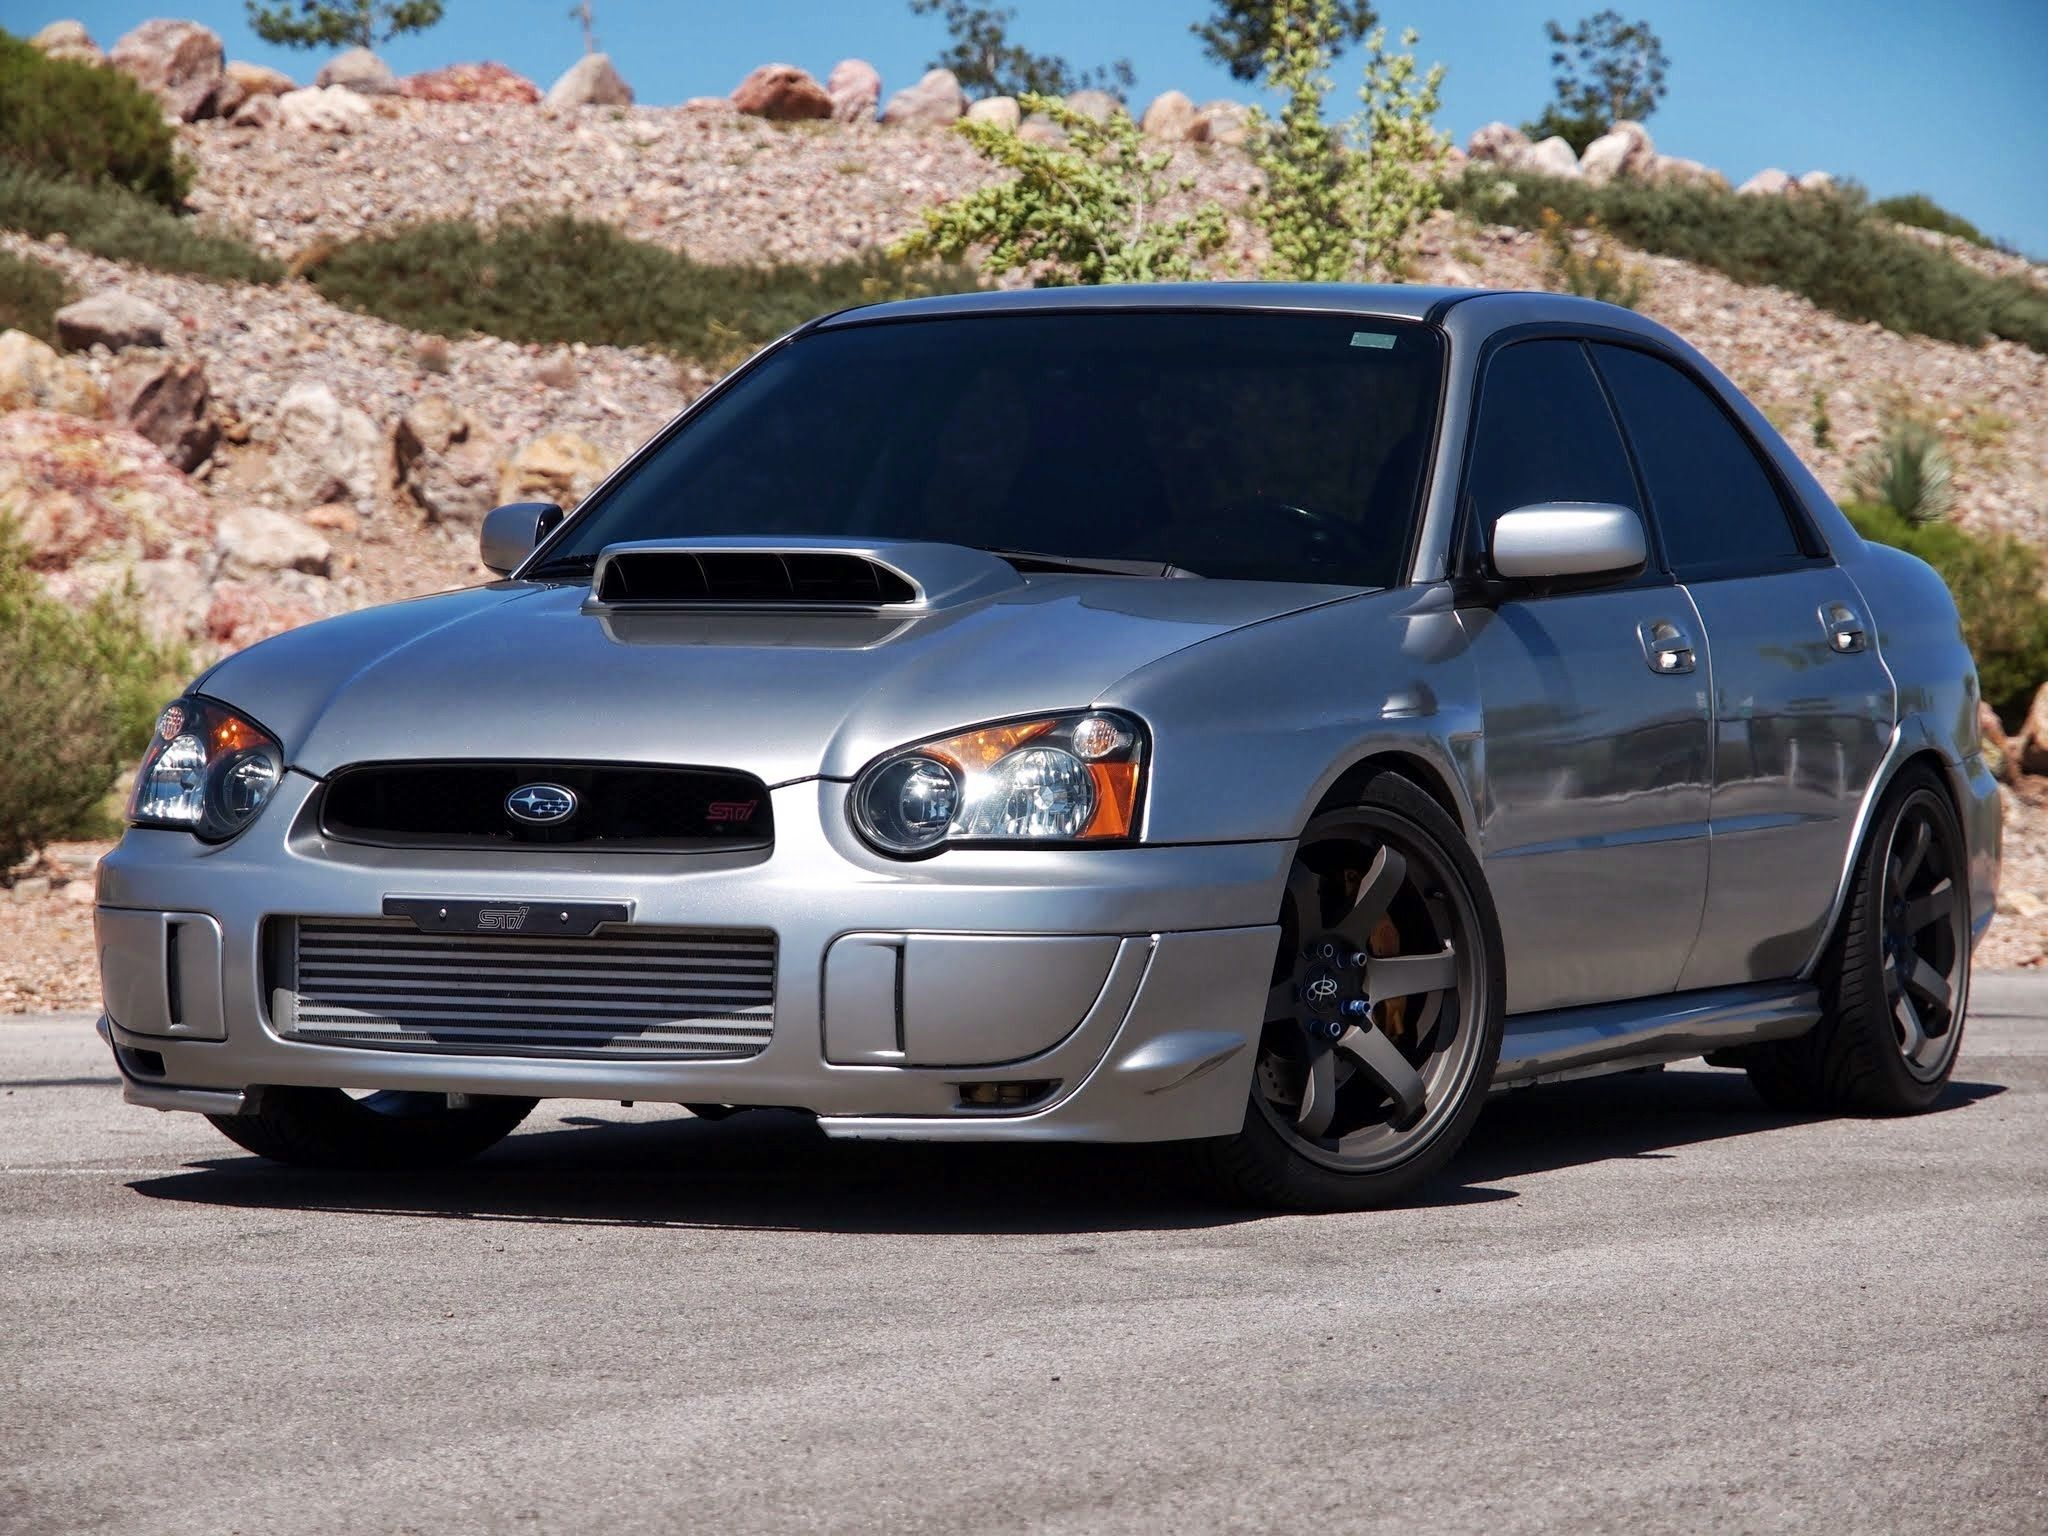 e473382f133b9a7ea8589e00e9c2ec62 Take A Look About 2002 Subaru Impreza Wrx Specs